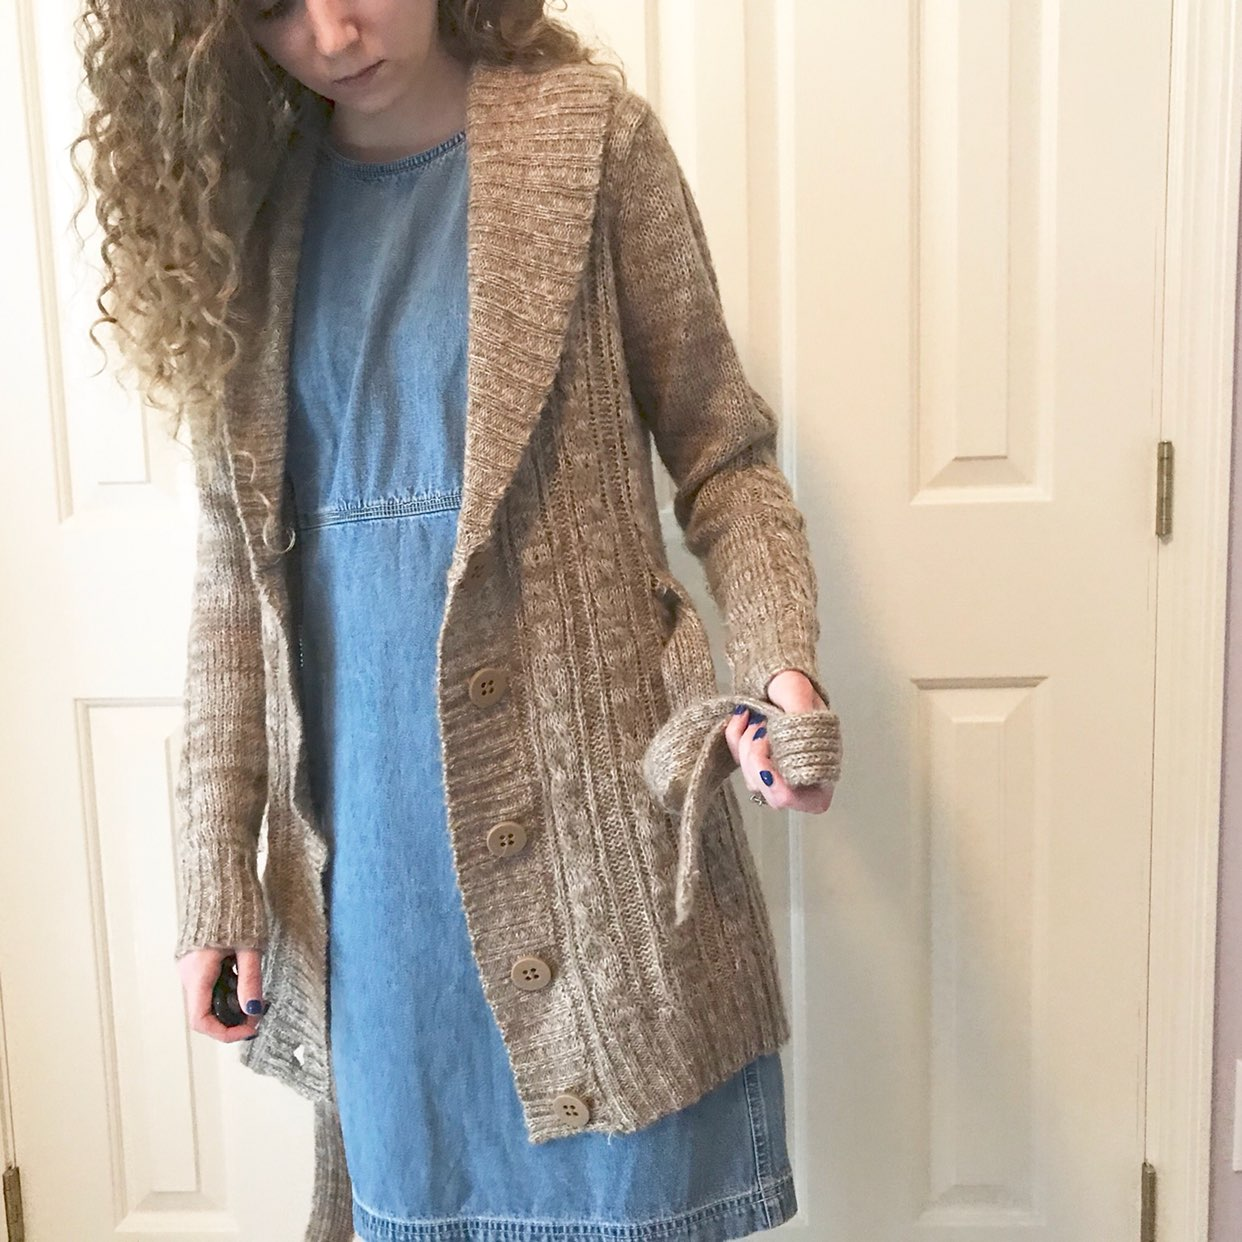 Long Tan Cardigan - Mercari: BUY & SELL THINGS YOU LOVE